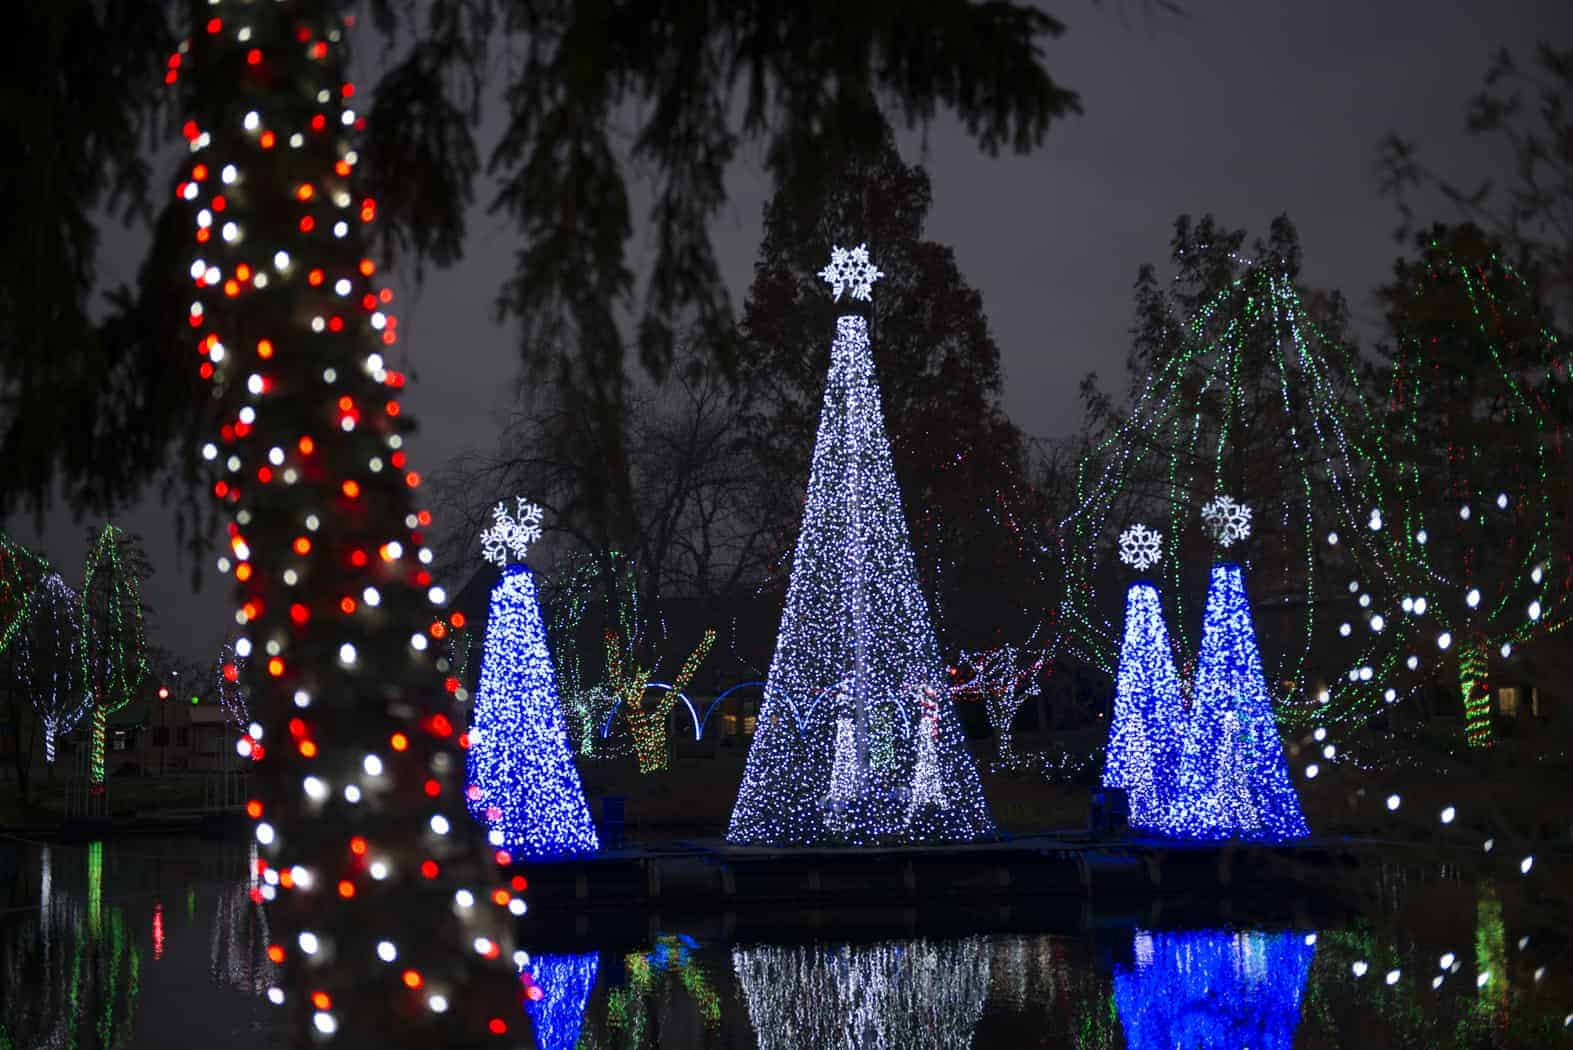 Columbus Zoo Christmas Lights 2020 How Much Wildlights Holiday Magic at the Columbus Zoo and Aquarium